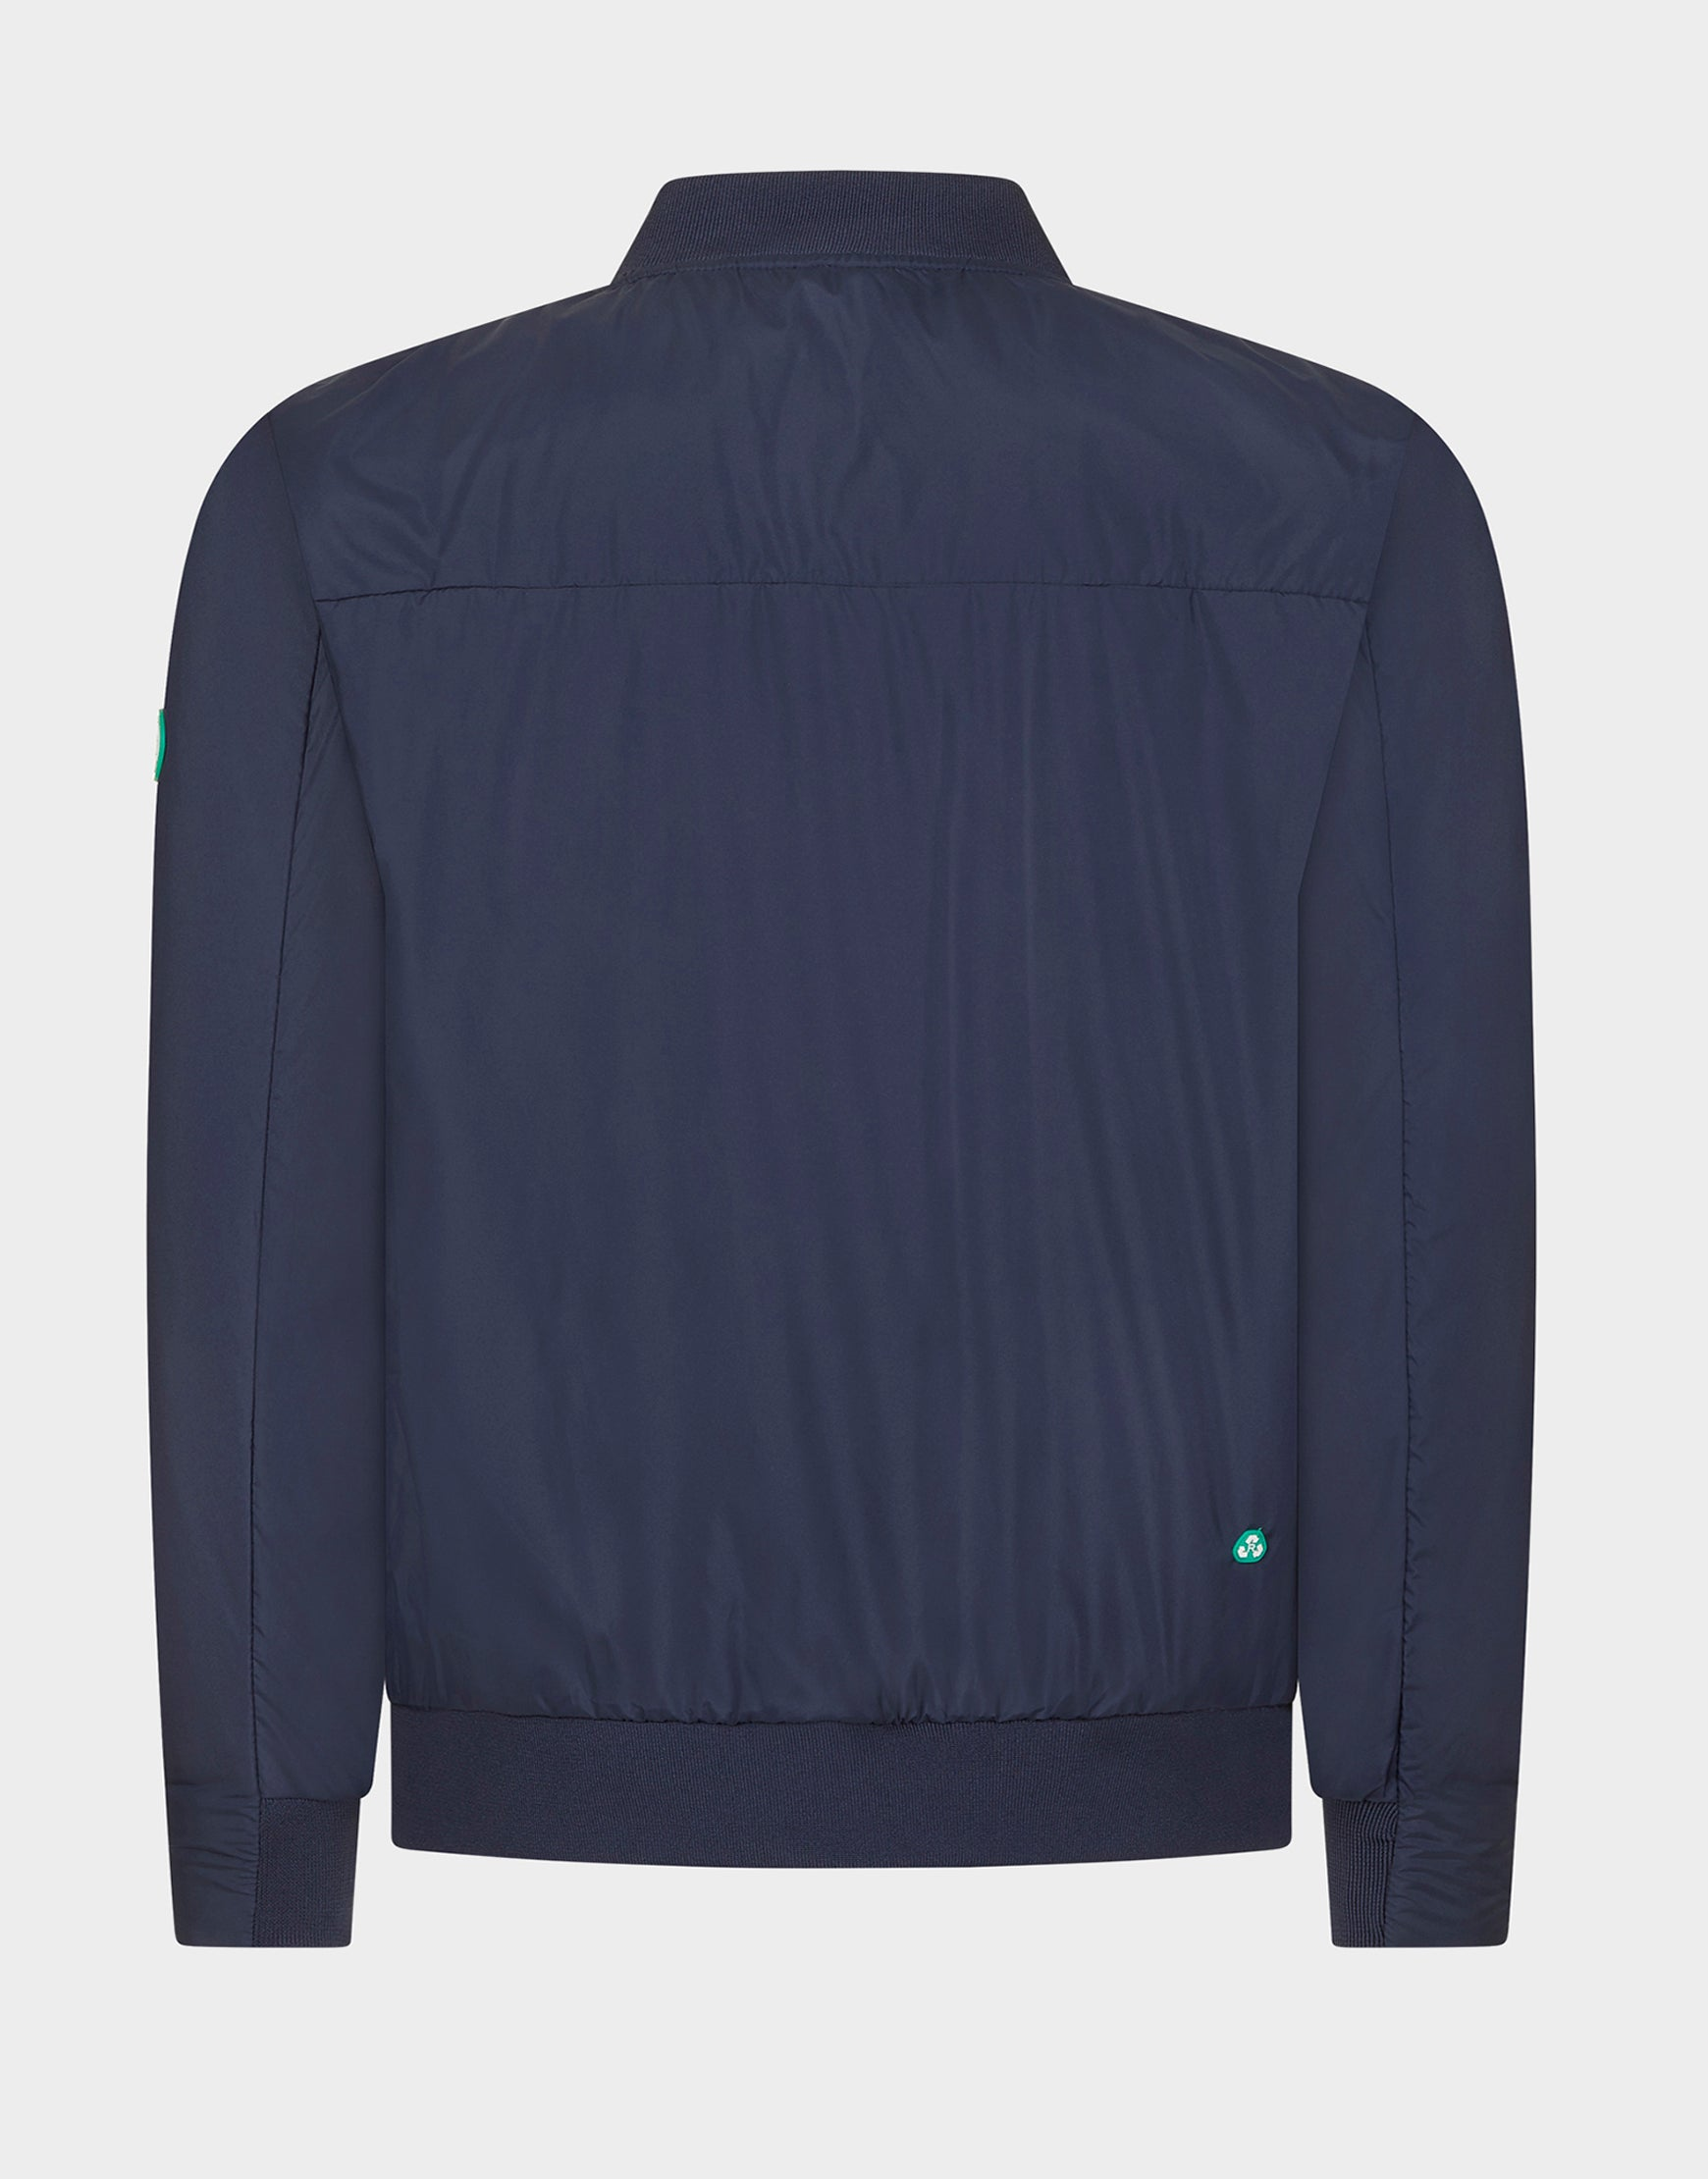 Mens RECY Jacket in Navy Blue